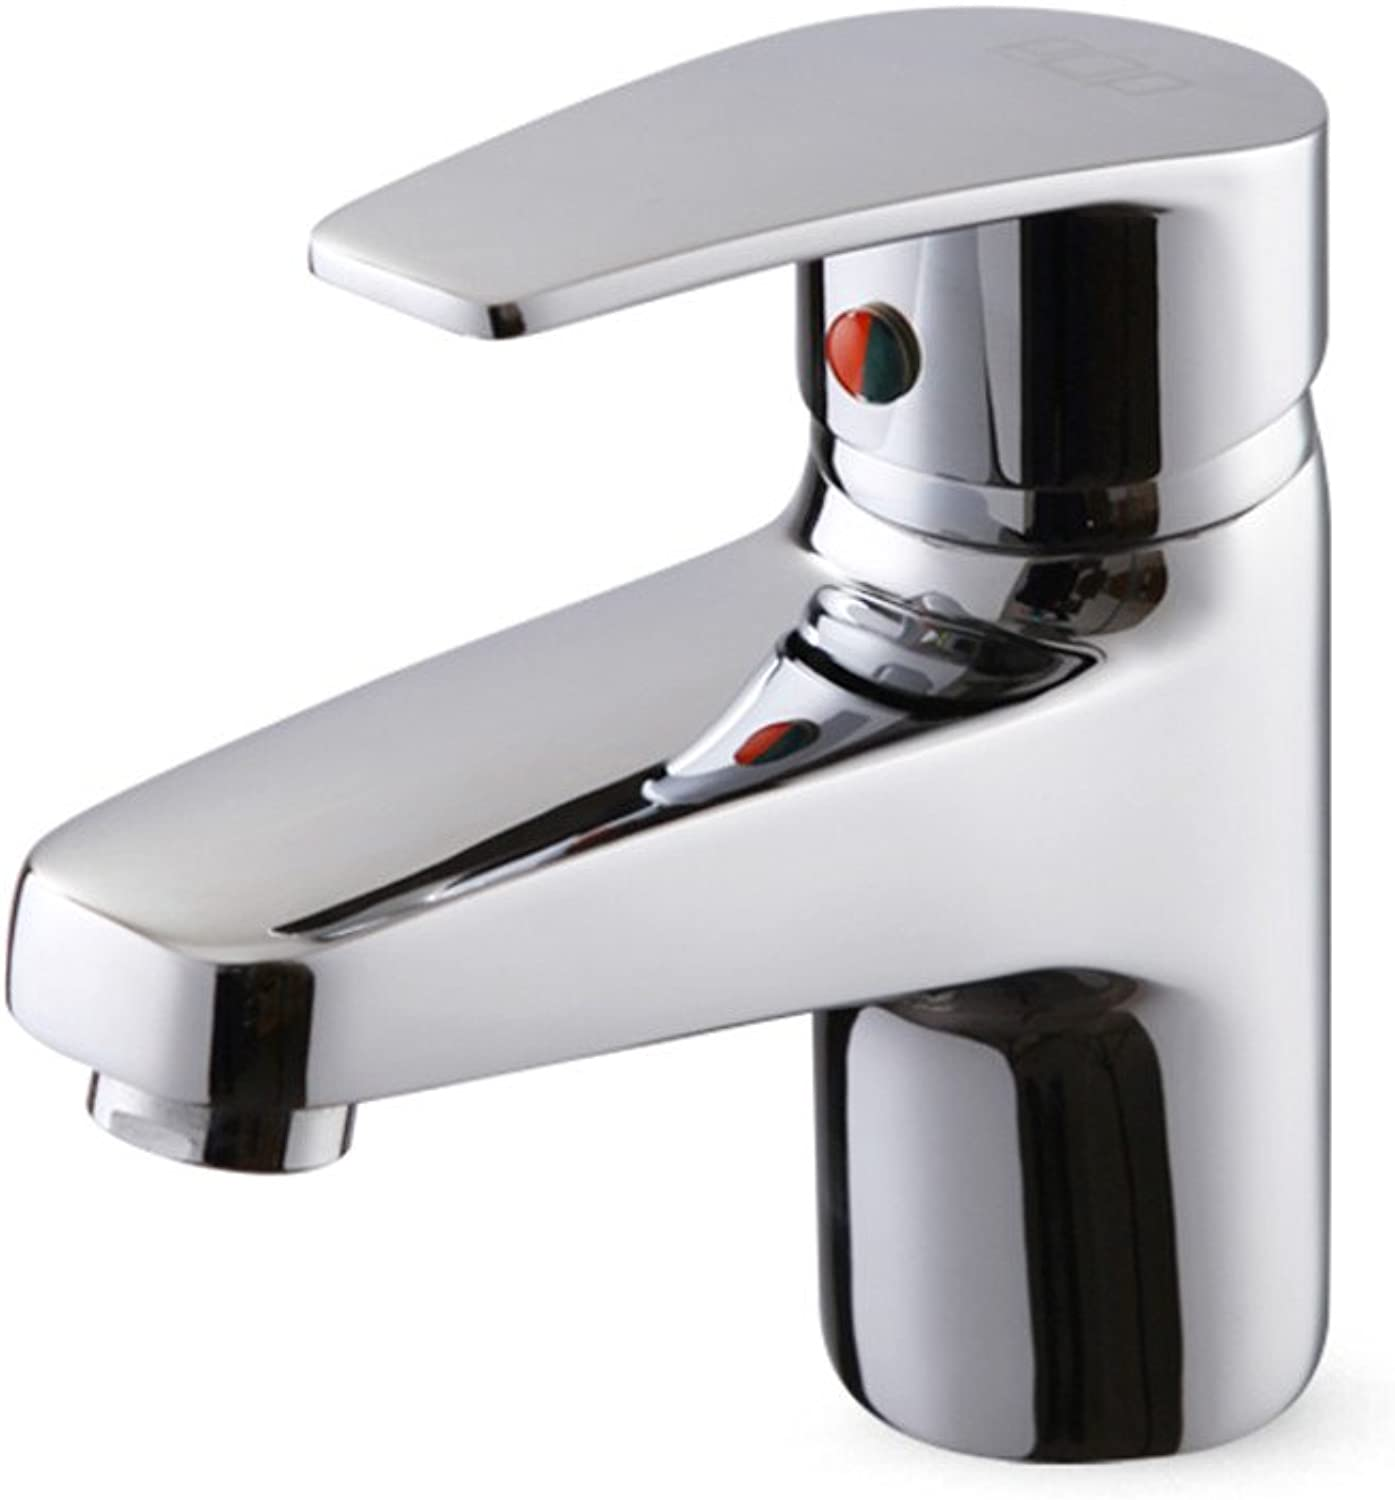 Good quality Water faucet basin mixer bathroom fine copper hot and cold basin faucet single hole a vanity area with sink with the pull down faucets